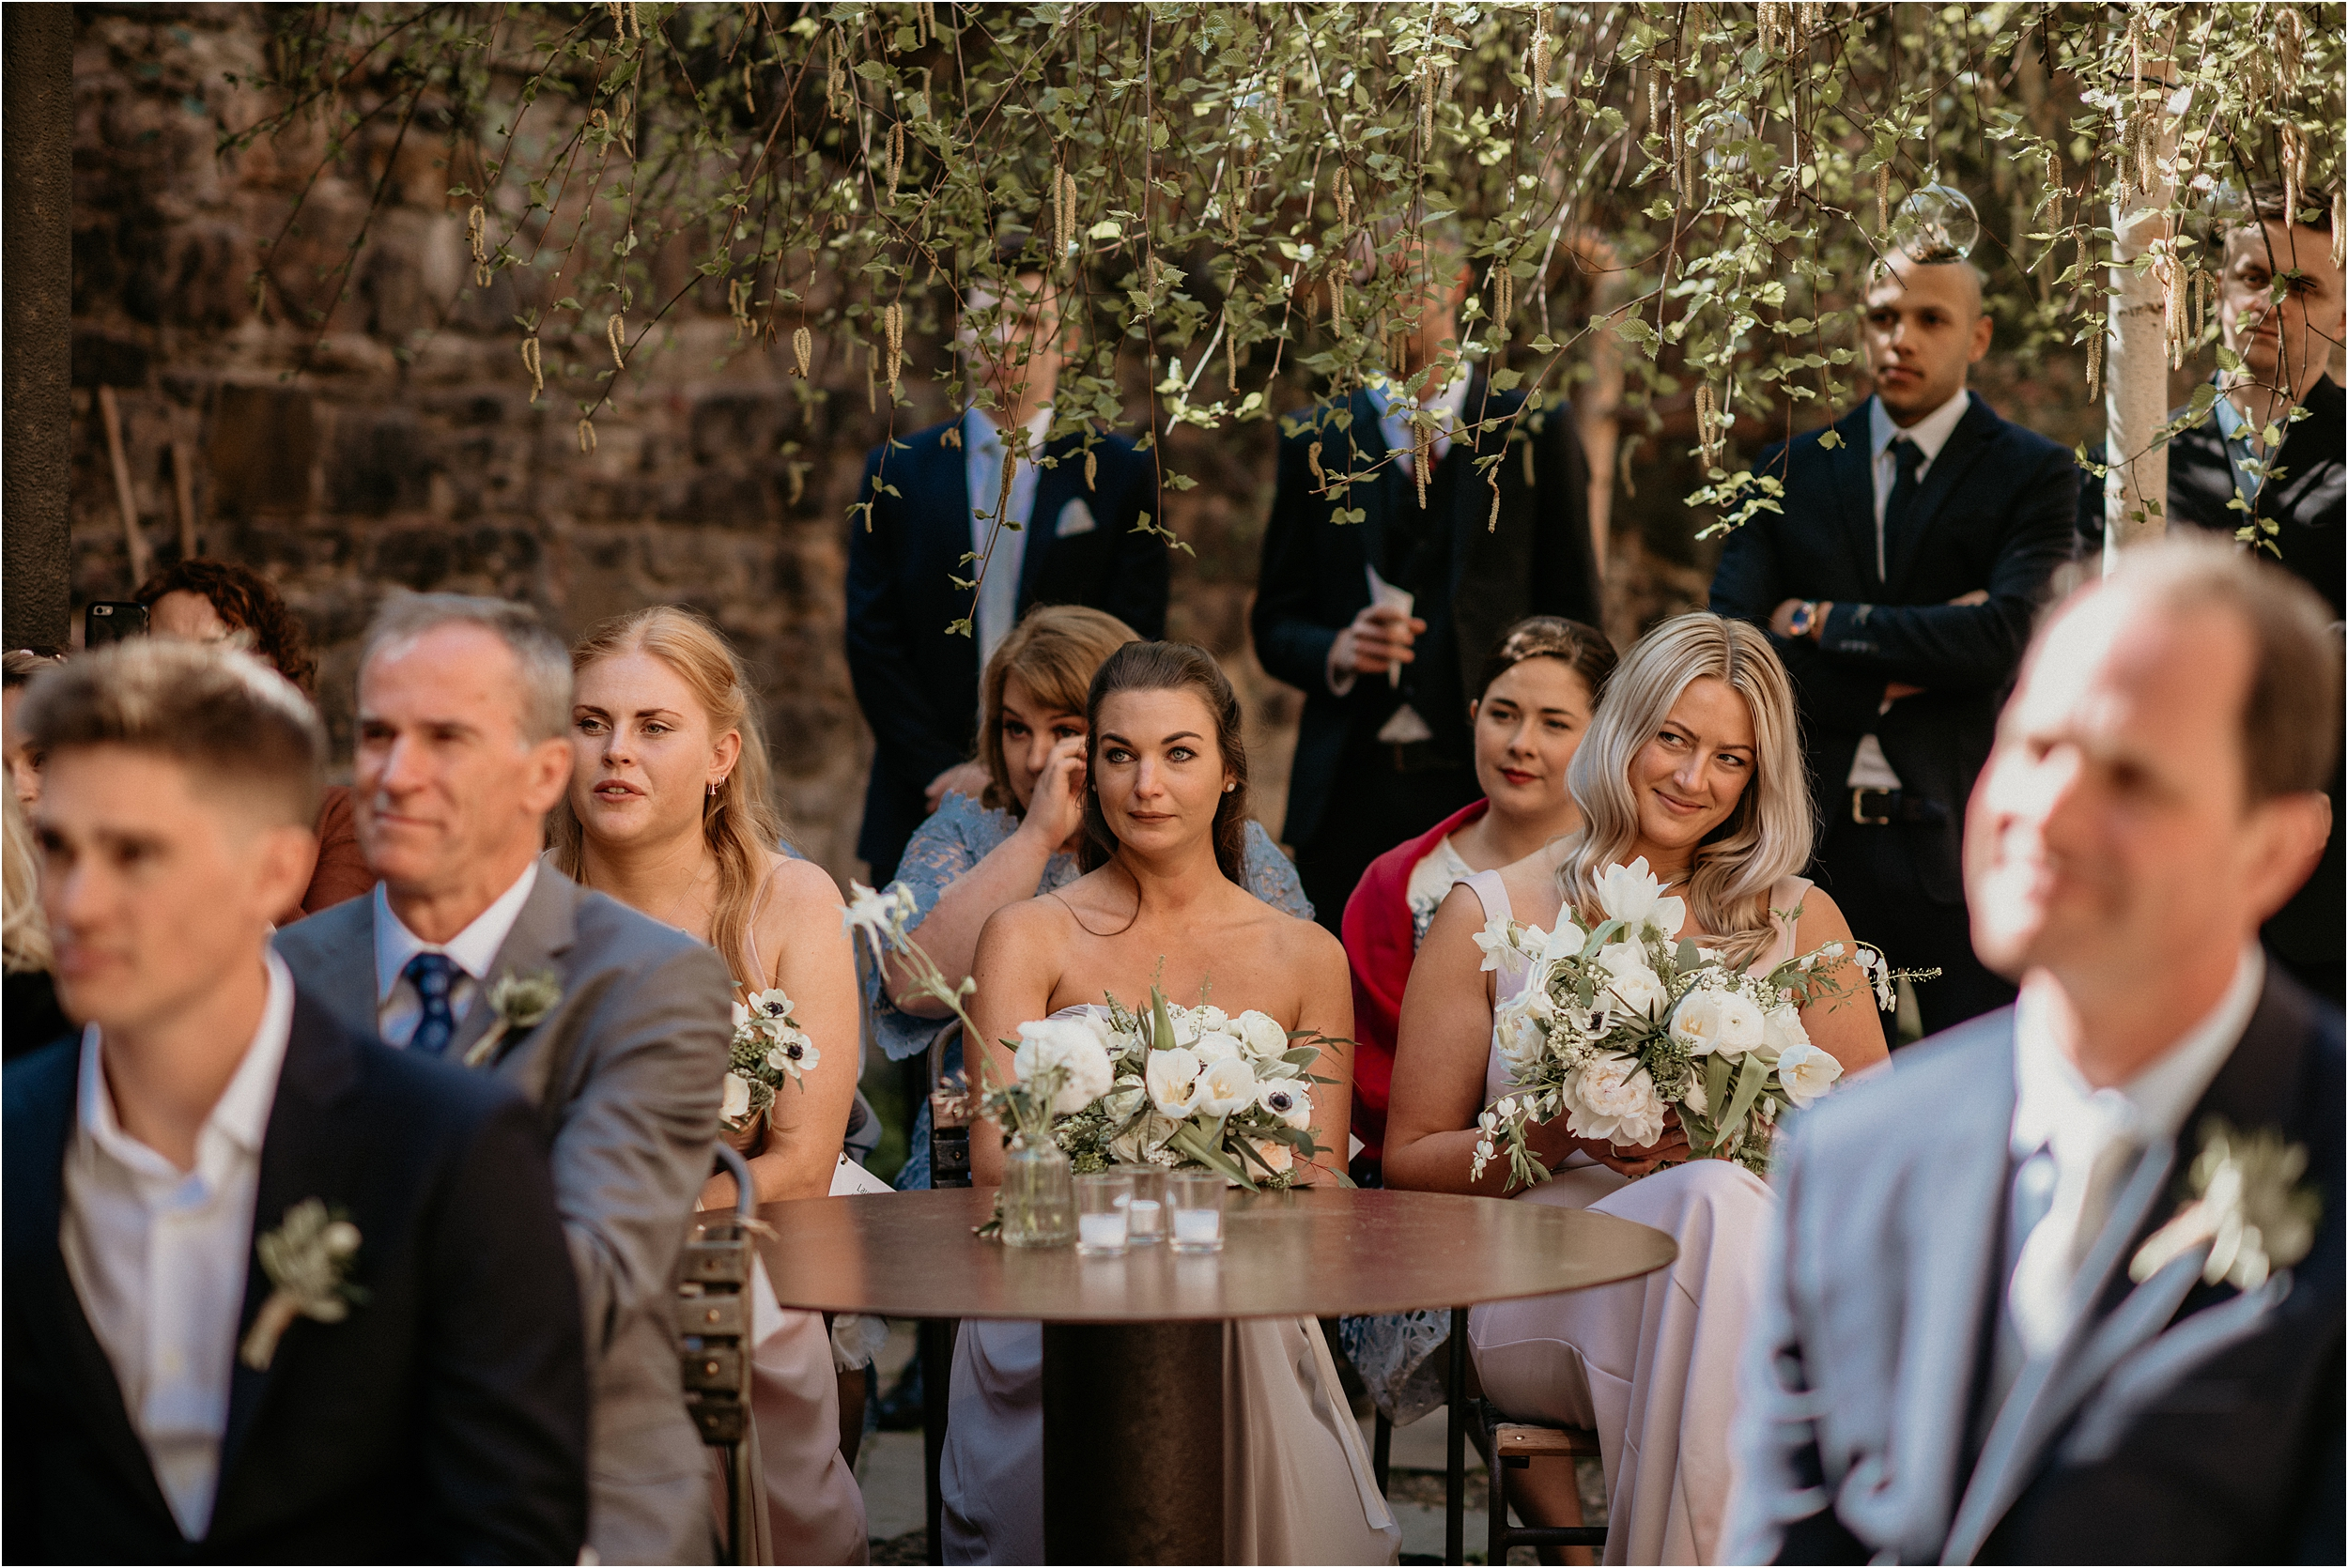 Timberyard-Edinburgh-wedding-photography__0046.jpg